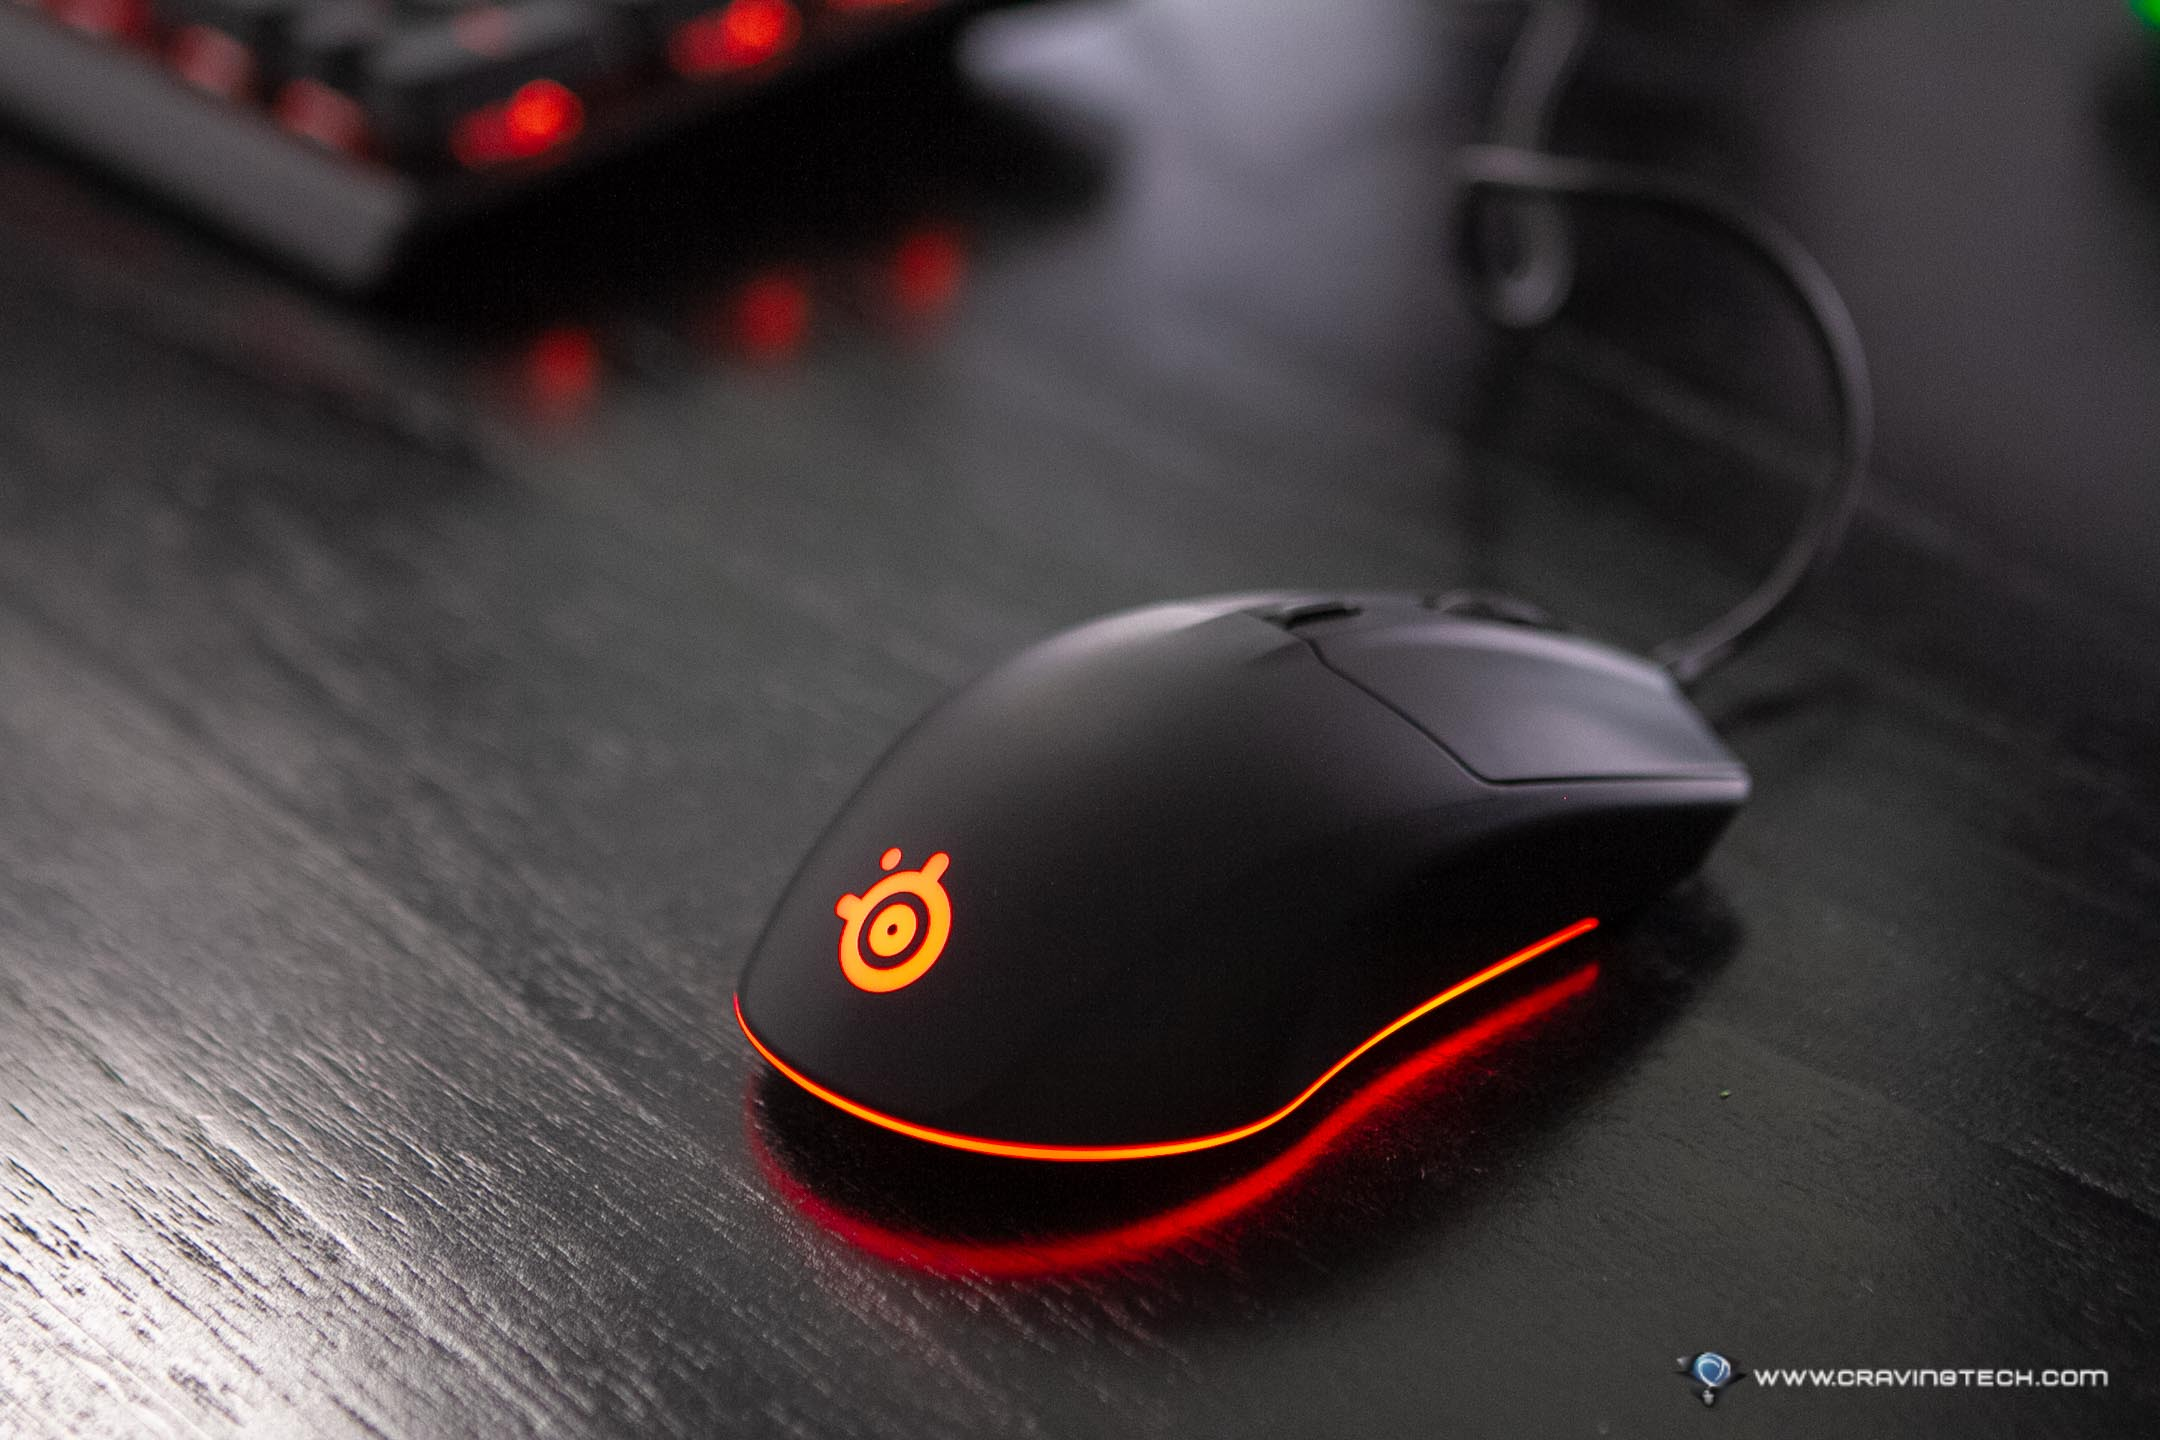 A$69 SteelSeries gaming mouse? A steal or a flop? – SteelSeries Rival 3 Review